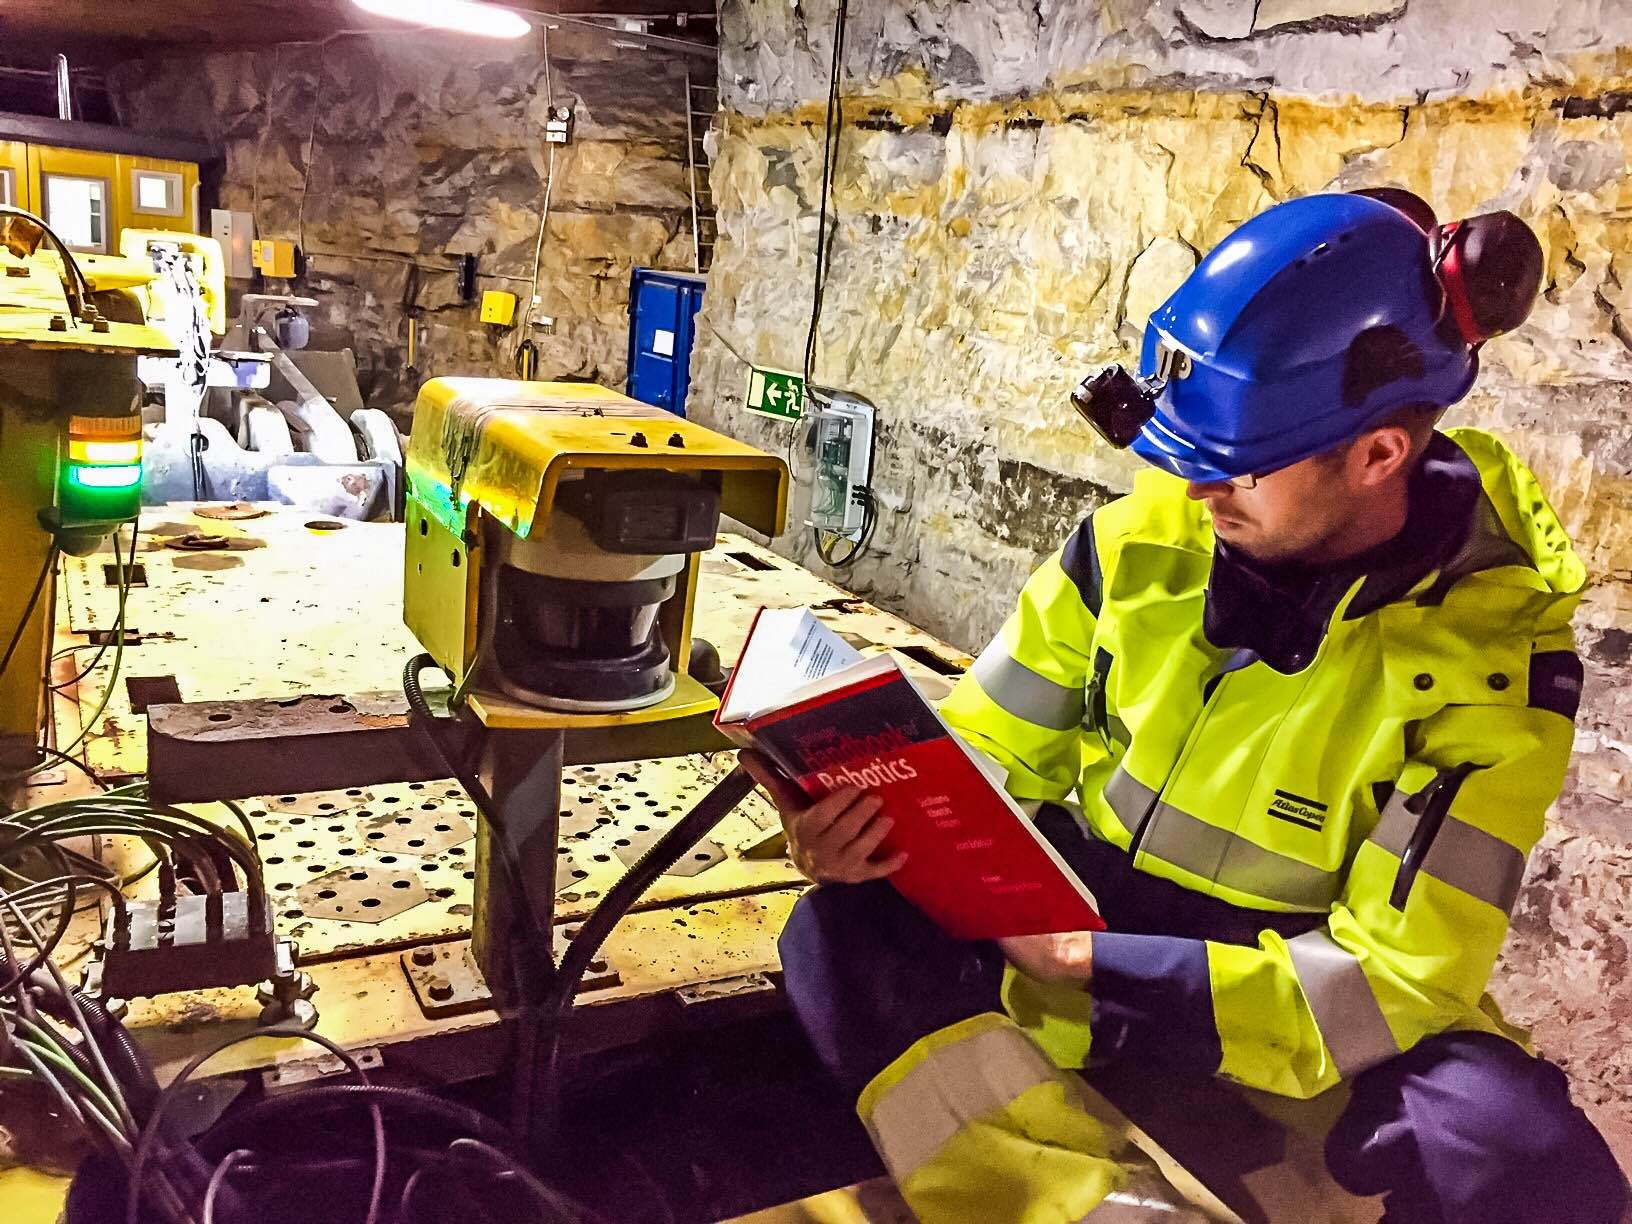 This photo of the Handbook of Robotics was taken underground at the Atlas Copco test facility near Kvarntorp on a robotic ST14 LHD machine.